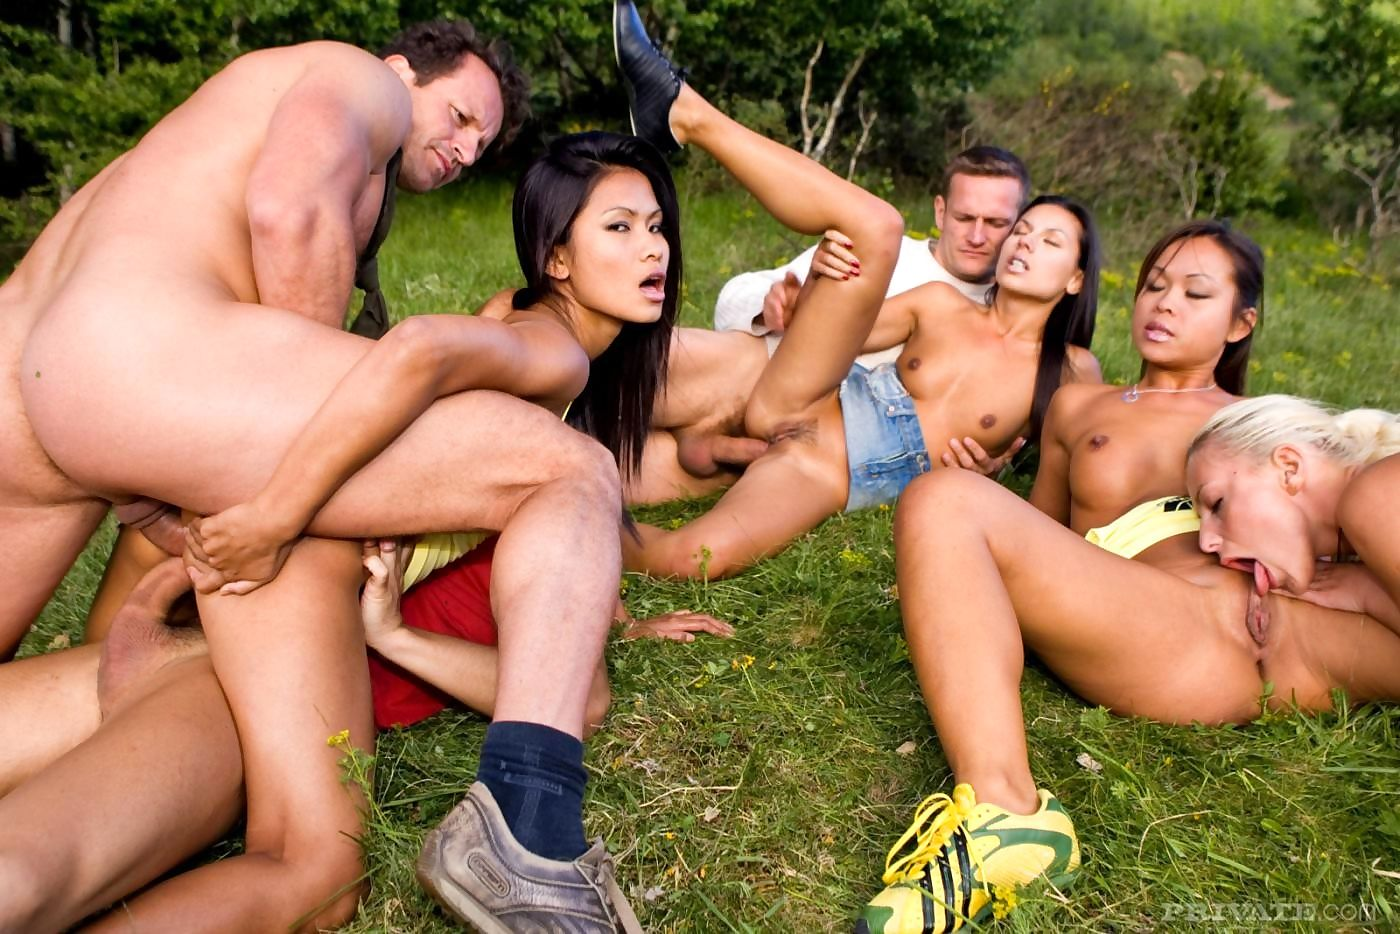 Asian pornstars gangbanged in outdoor orgy - part 1894